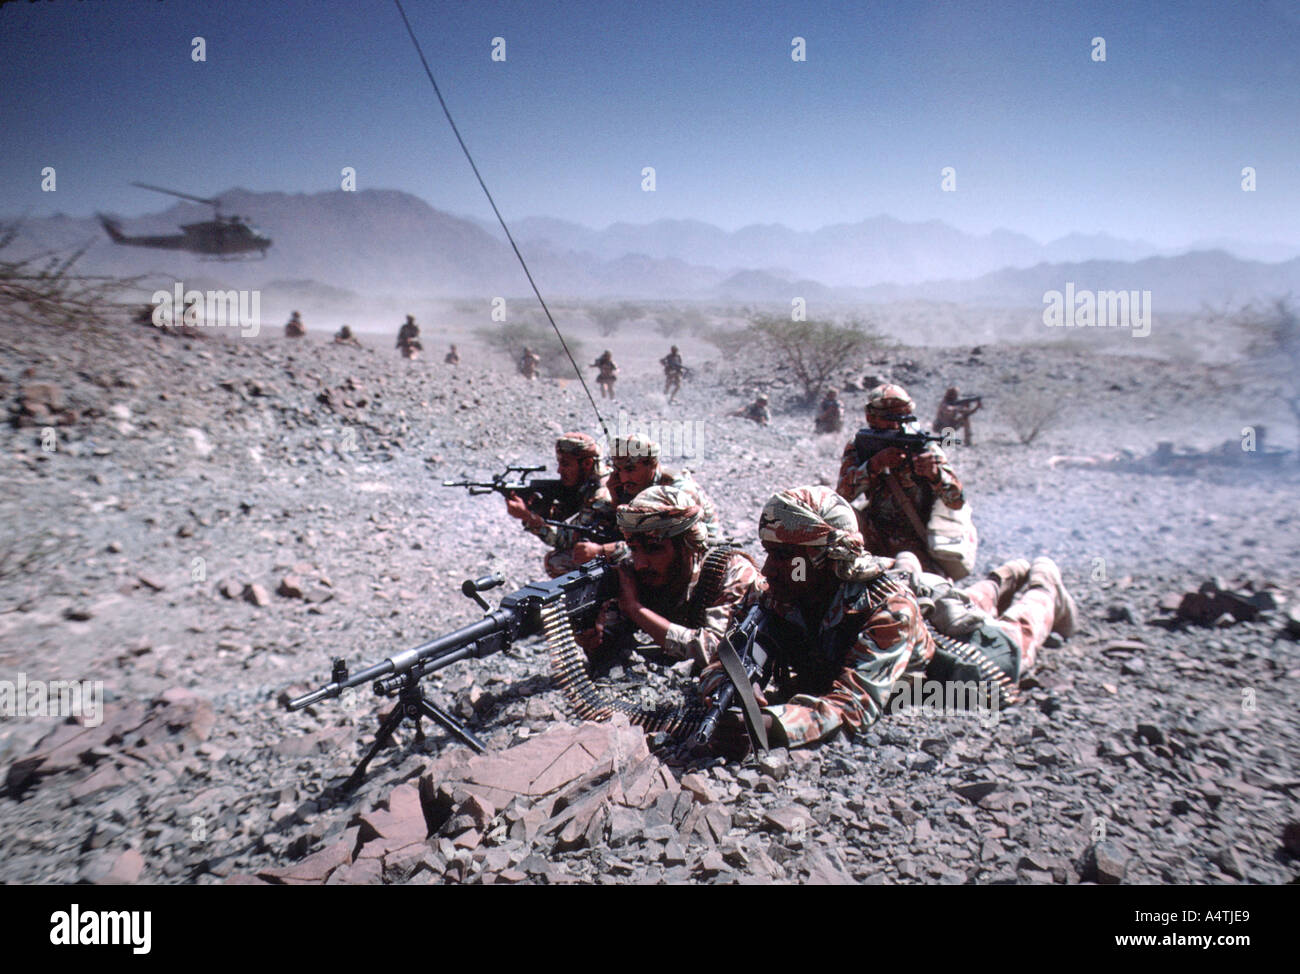 Soldiers in the desert - Stock Image